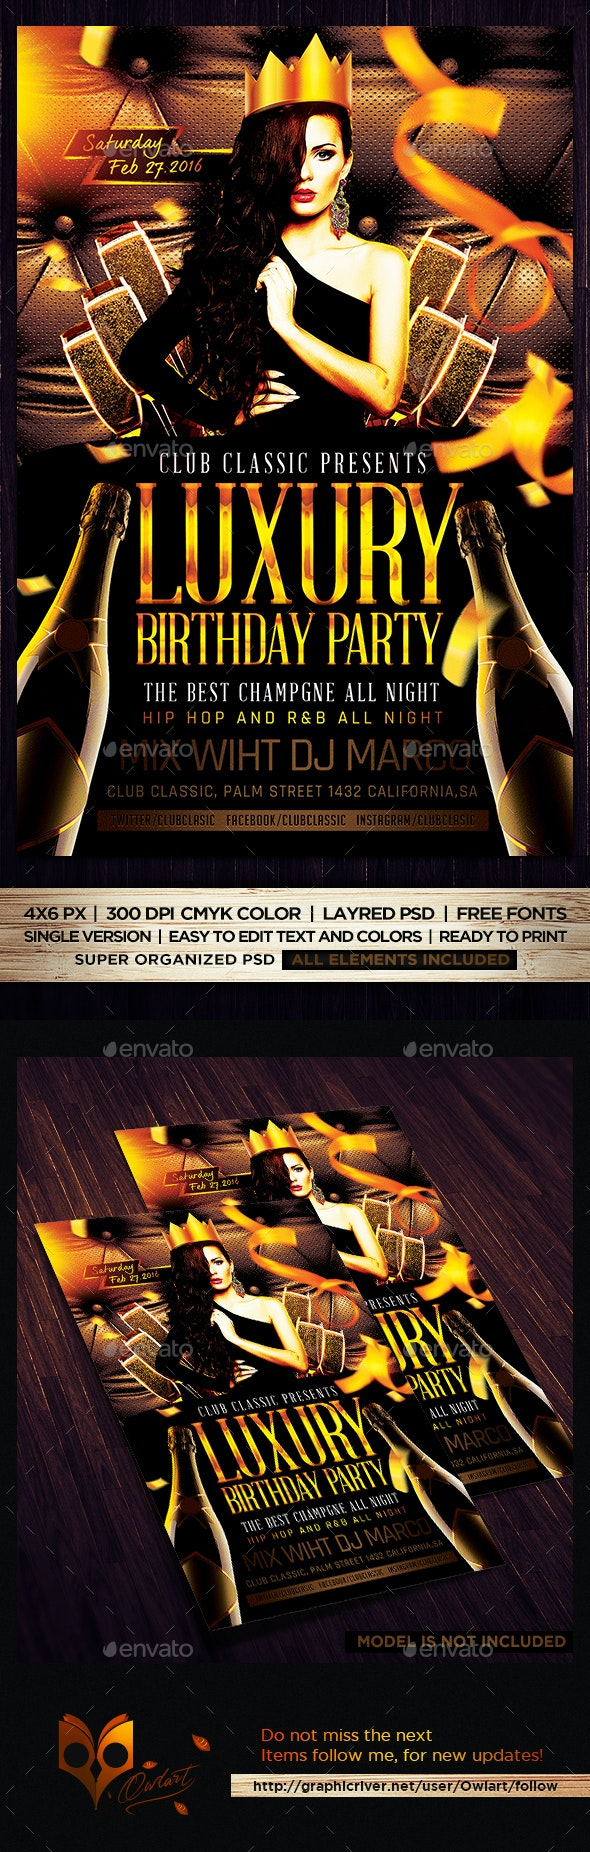 Luxury Birthday Party Flyer Template PSD - Flyers Print Templates